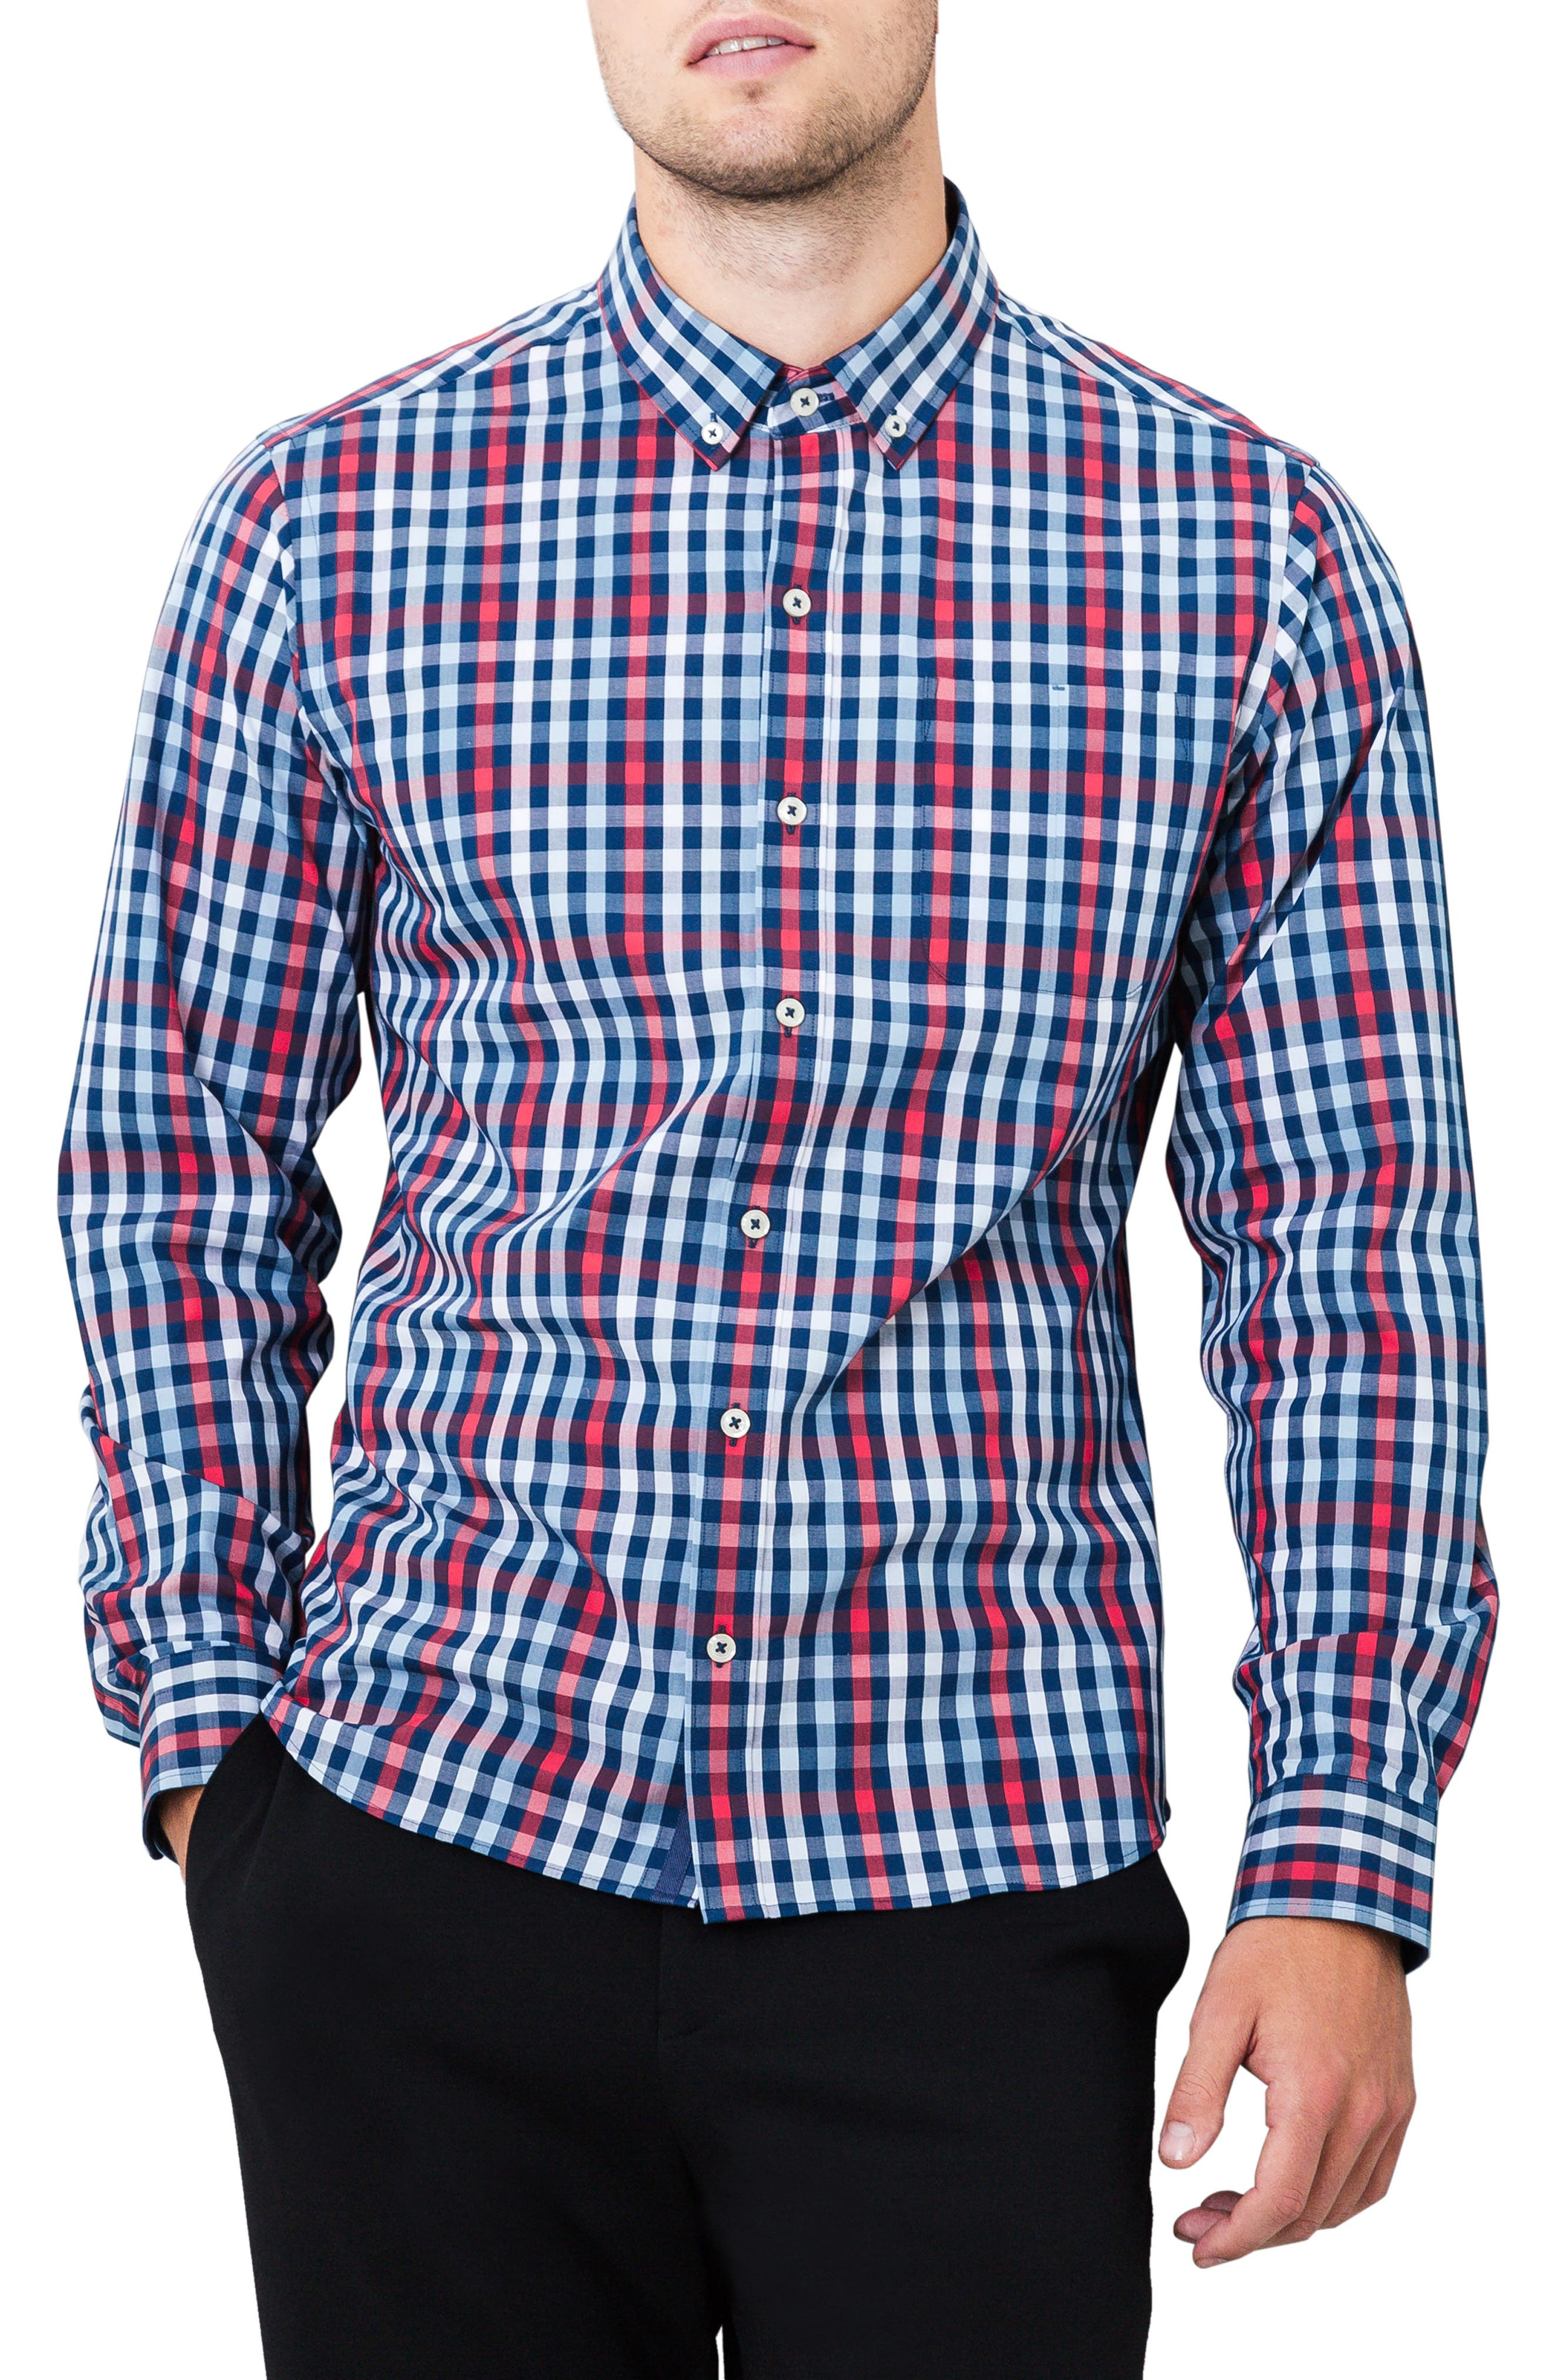 Year One Woven Shirt,                         Main,                         color, 410